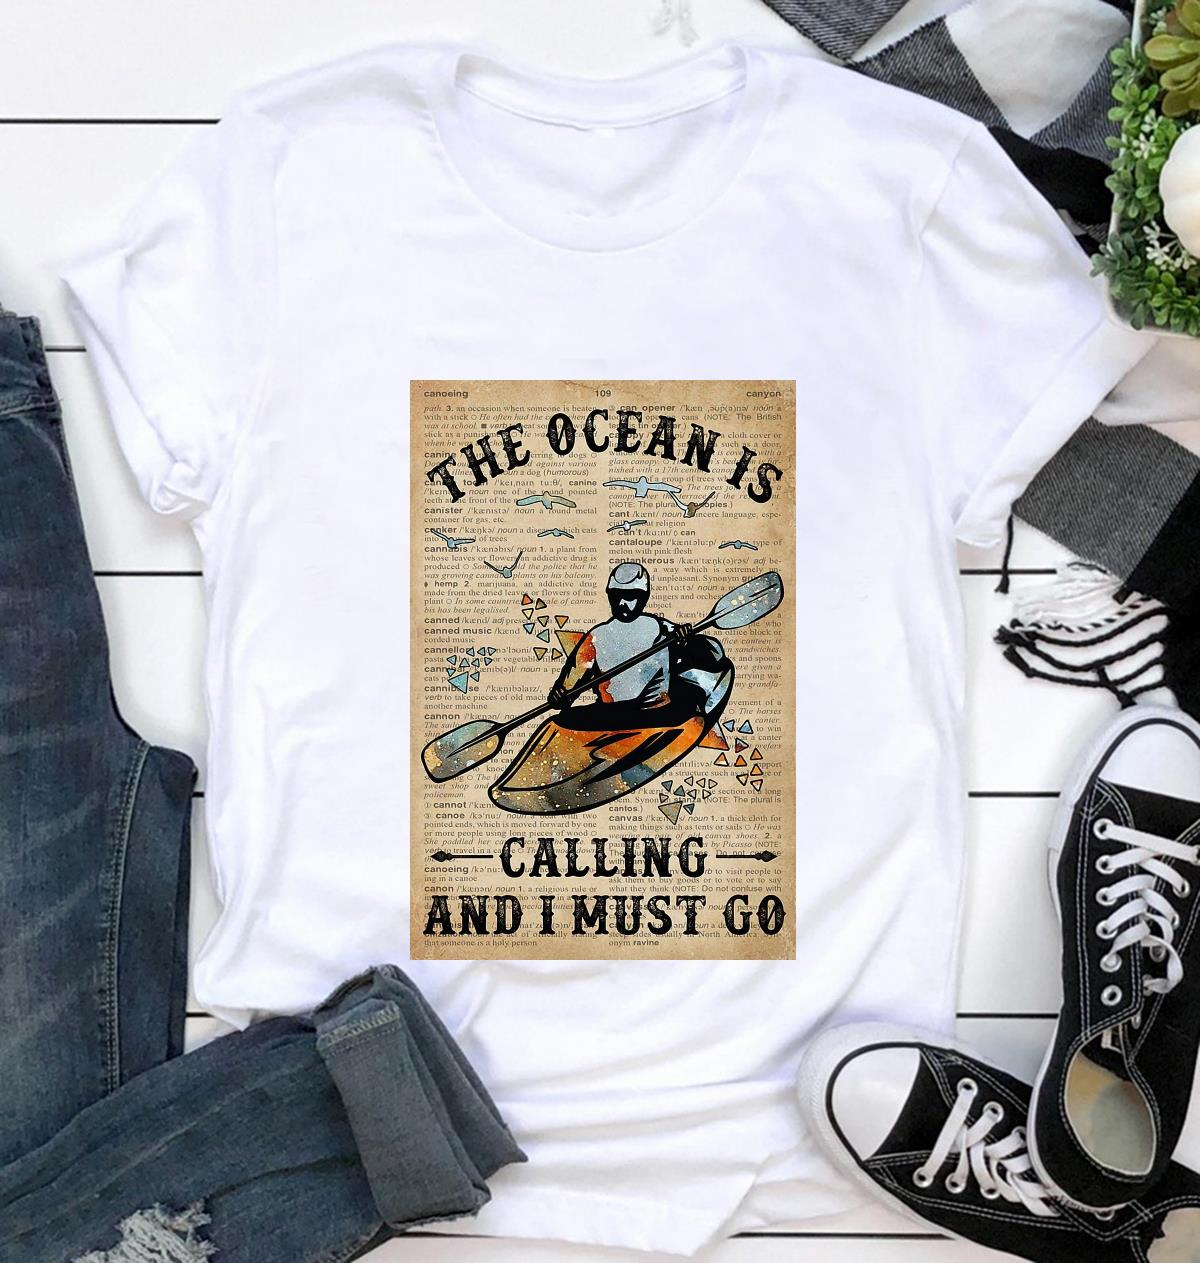 Canoeing the ocean is calling and I must go poster t-shirt